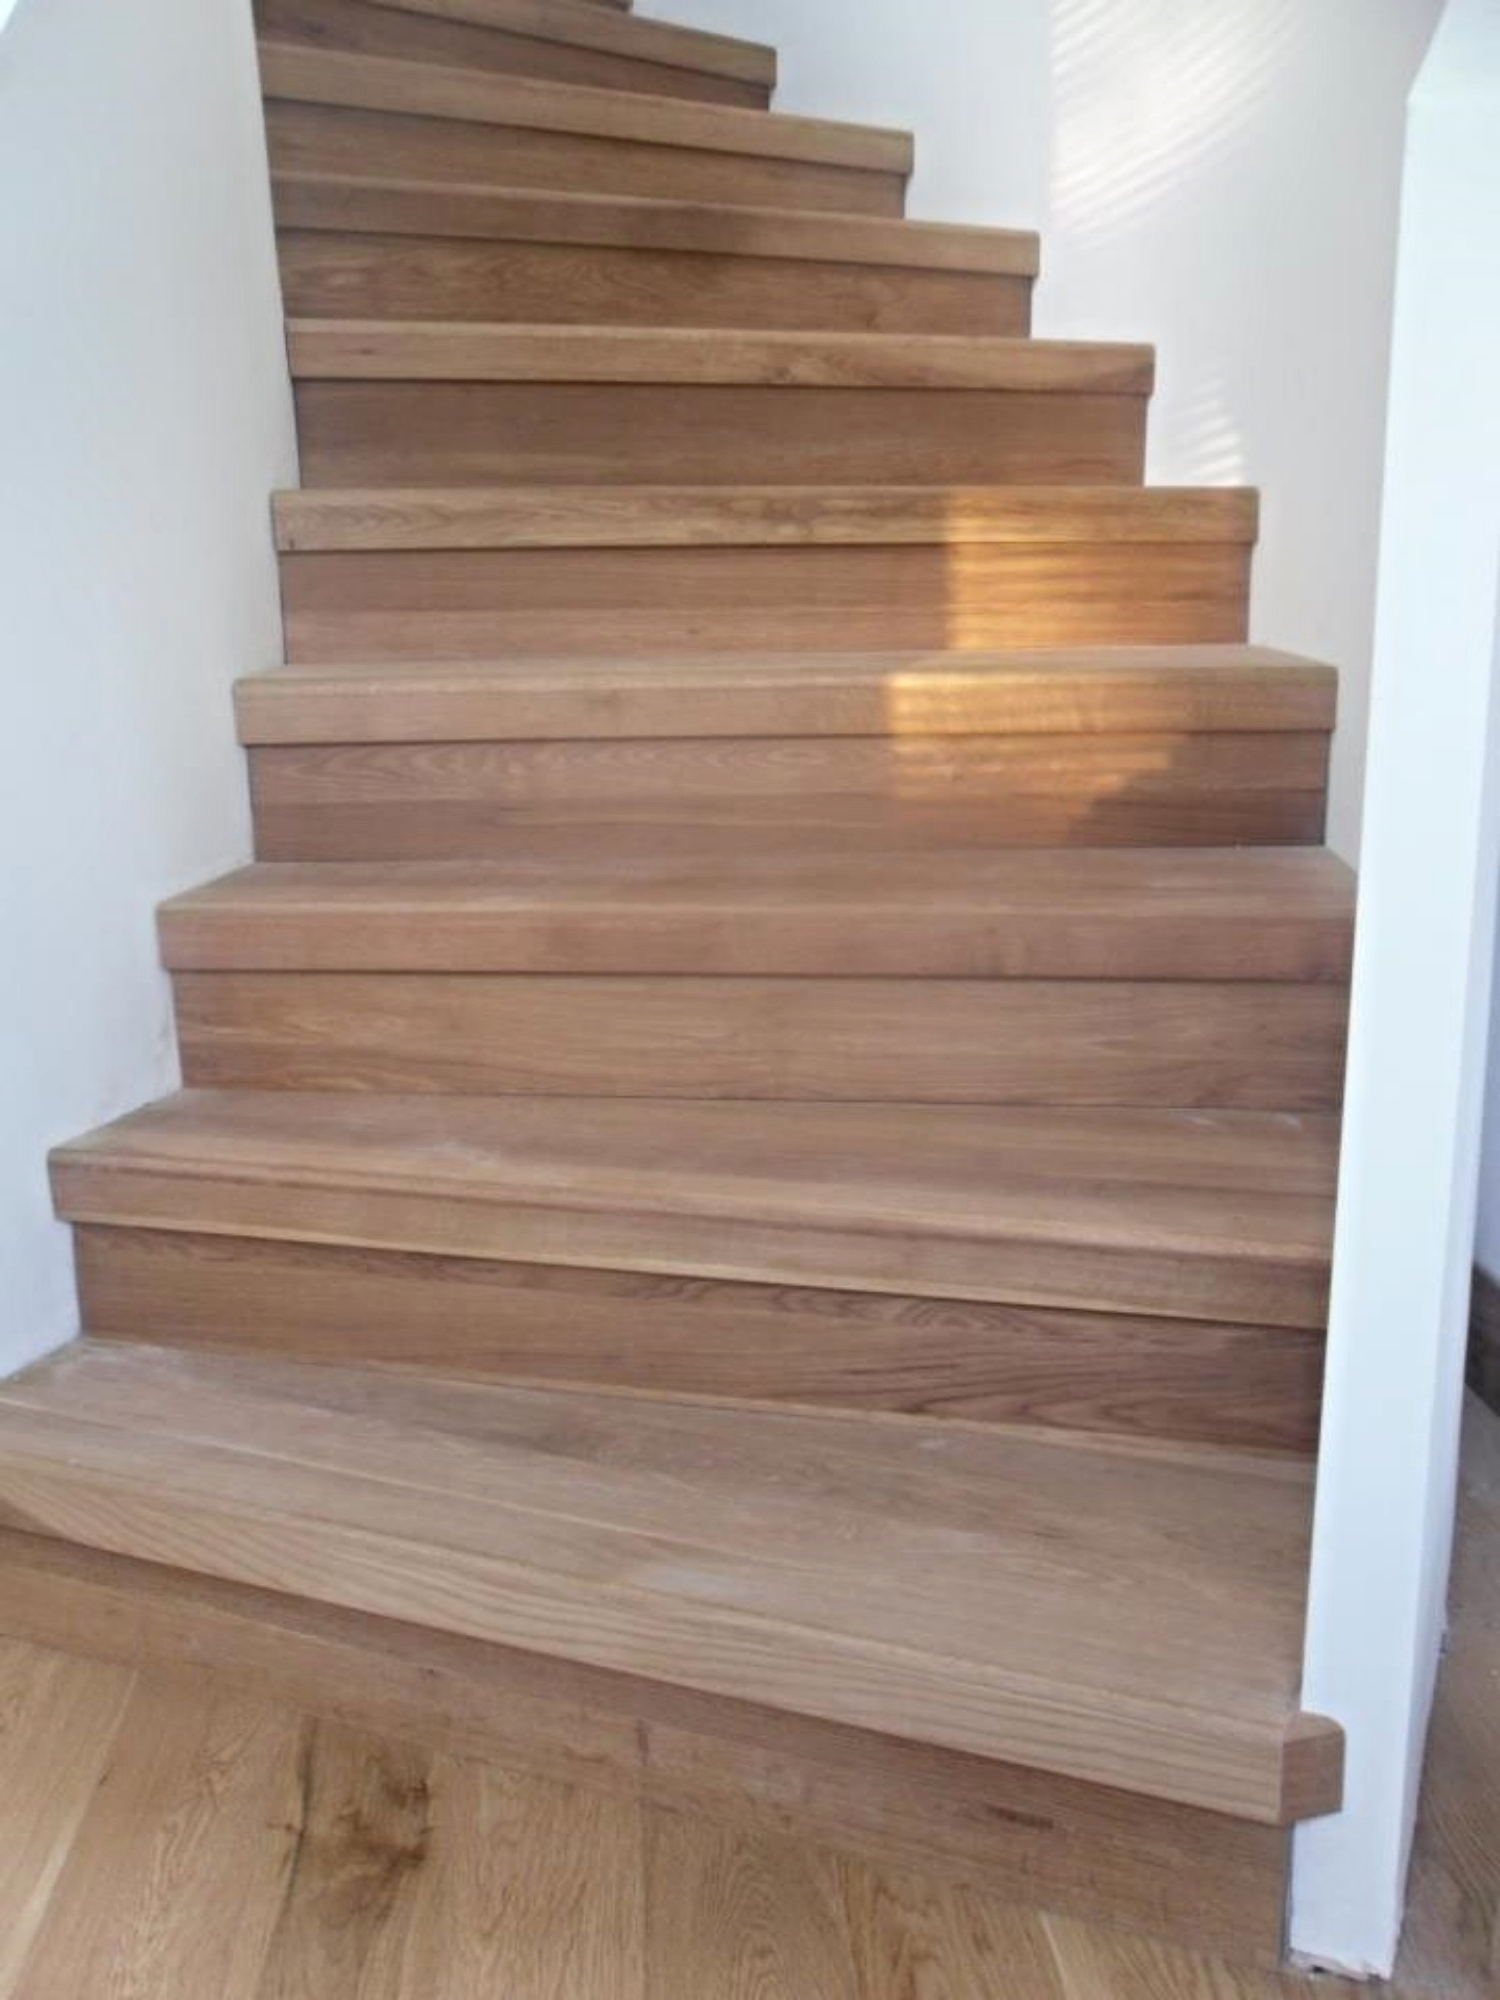 Solid oak stair treads and risers